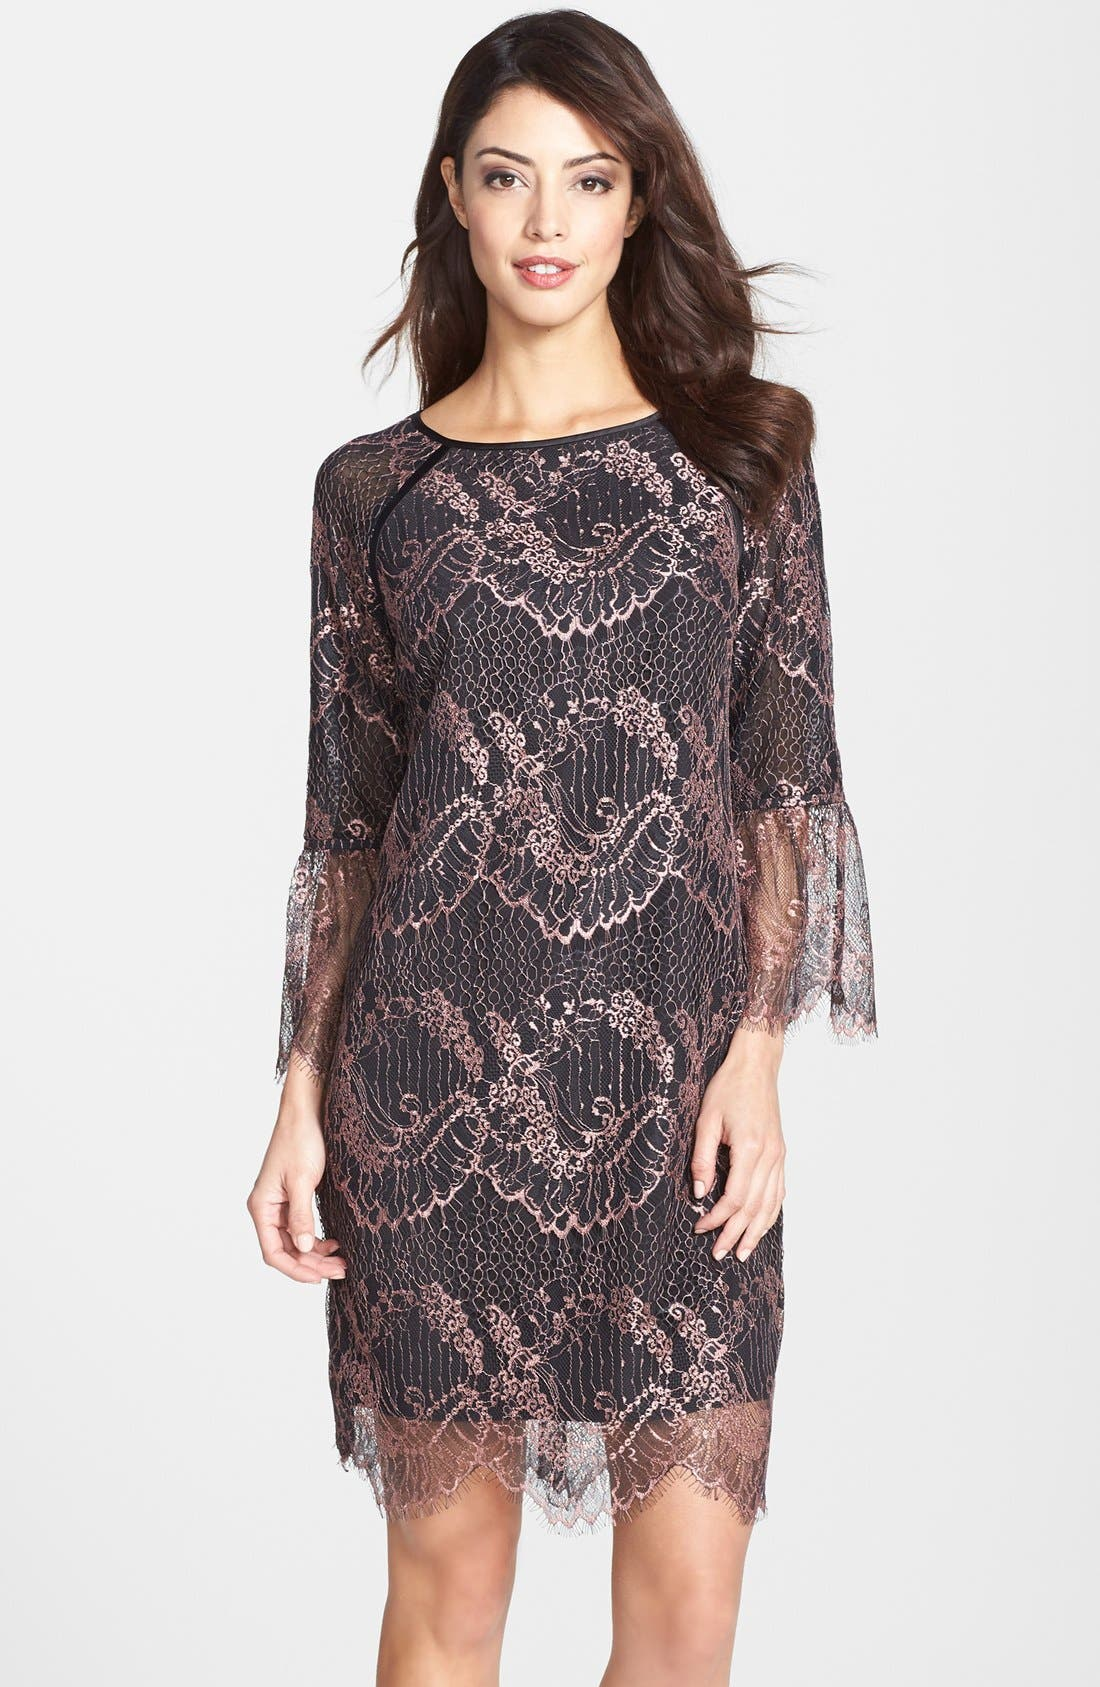 Alternate Image 1 Selected - Adrianna Papell Metallic Scalloped Lace Shift Dress